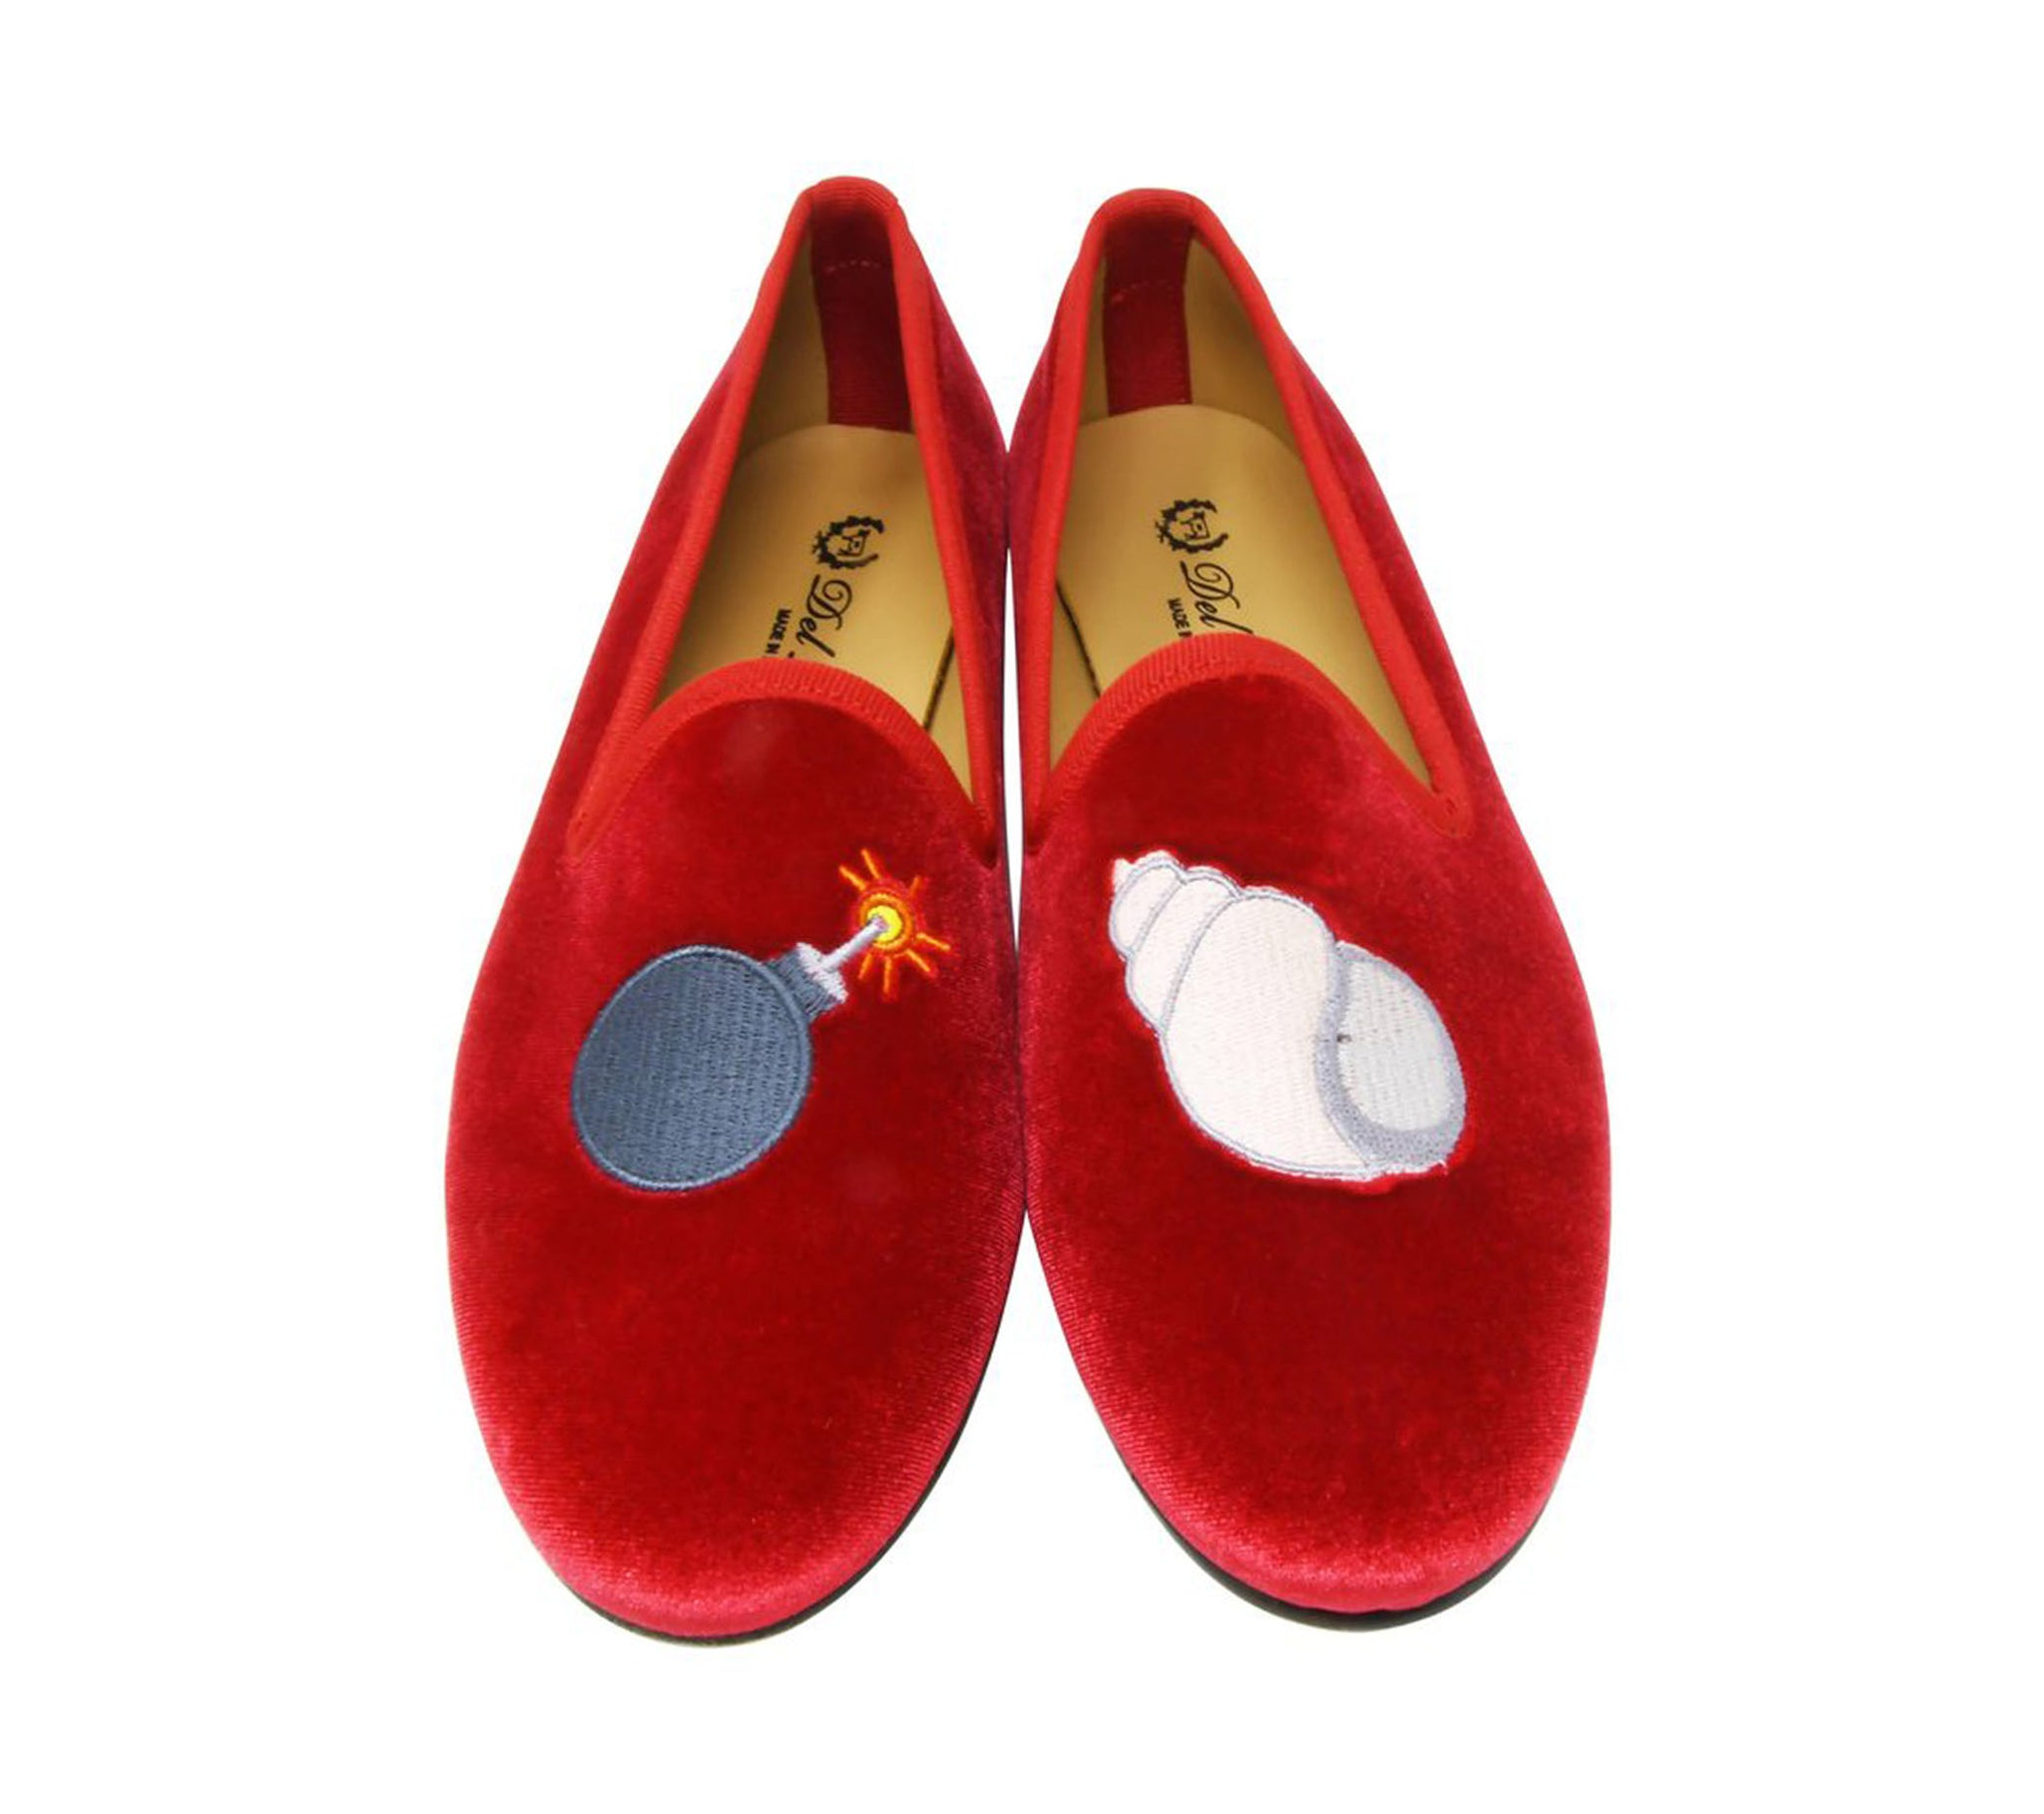 Del Toro Velvet Bombshell Smoking Flats in Red